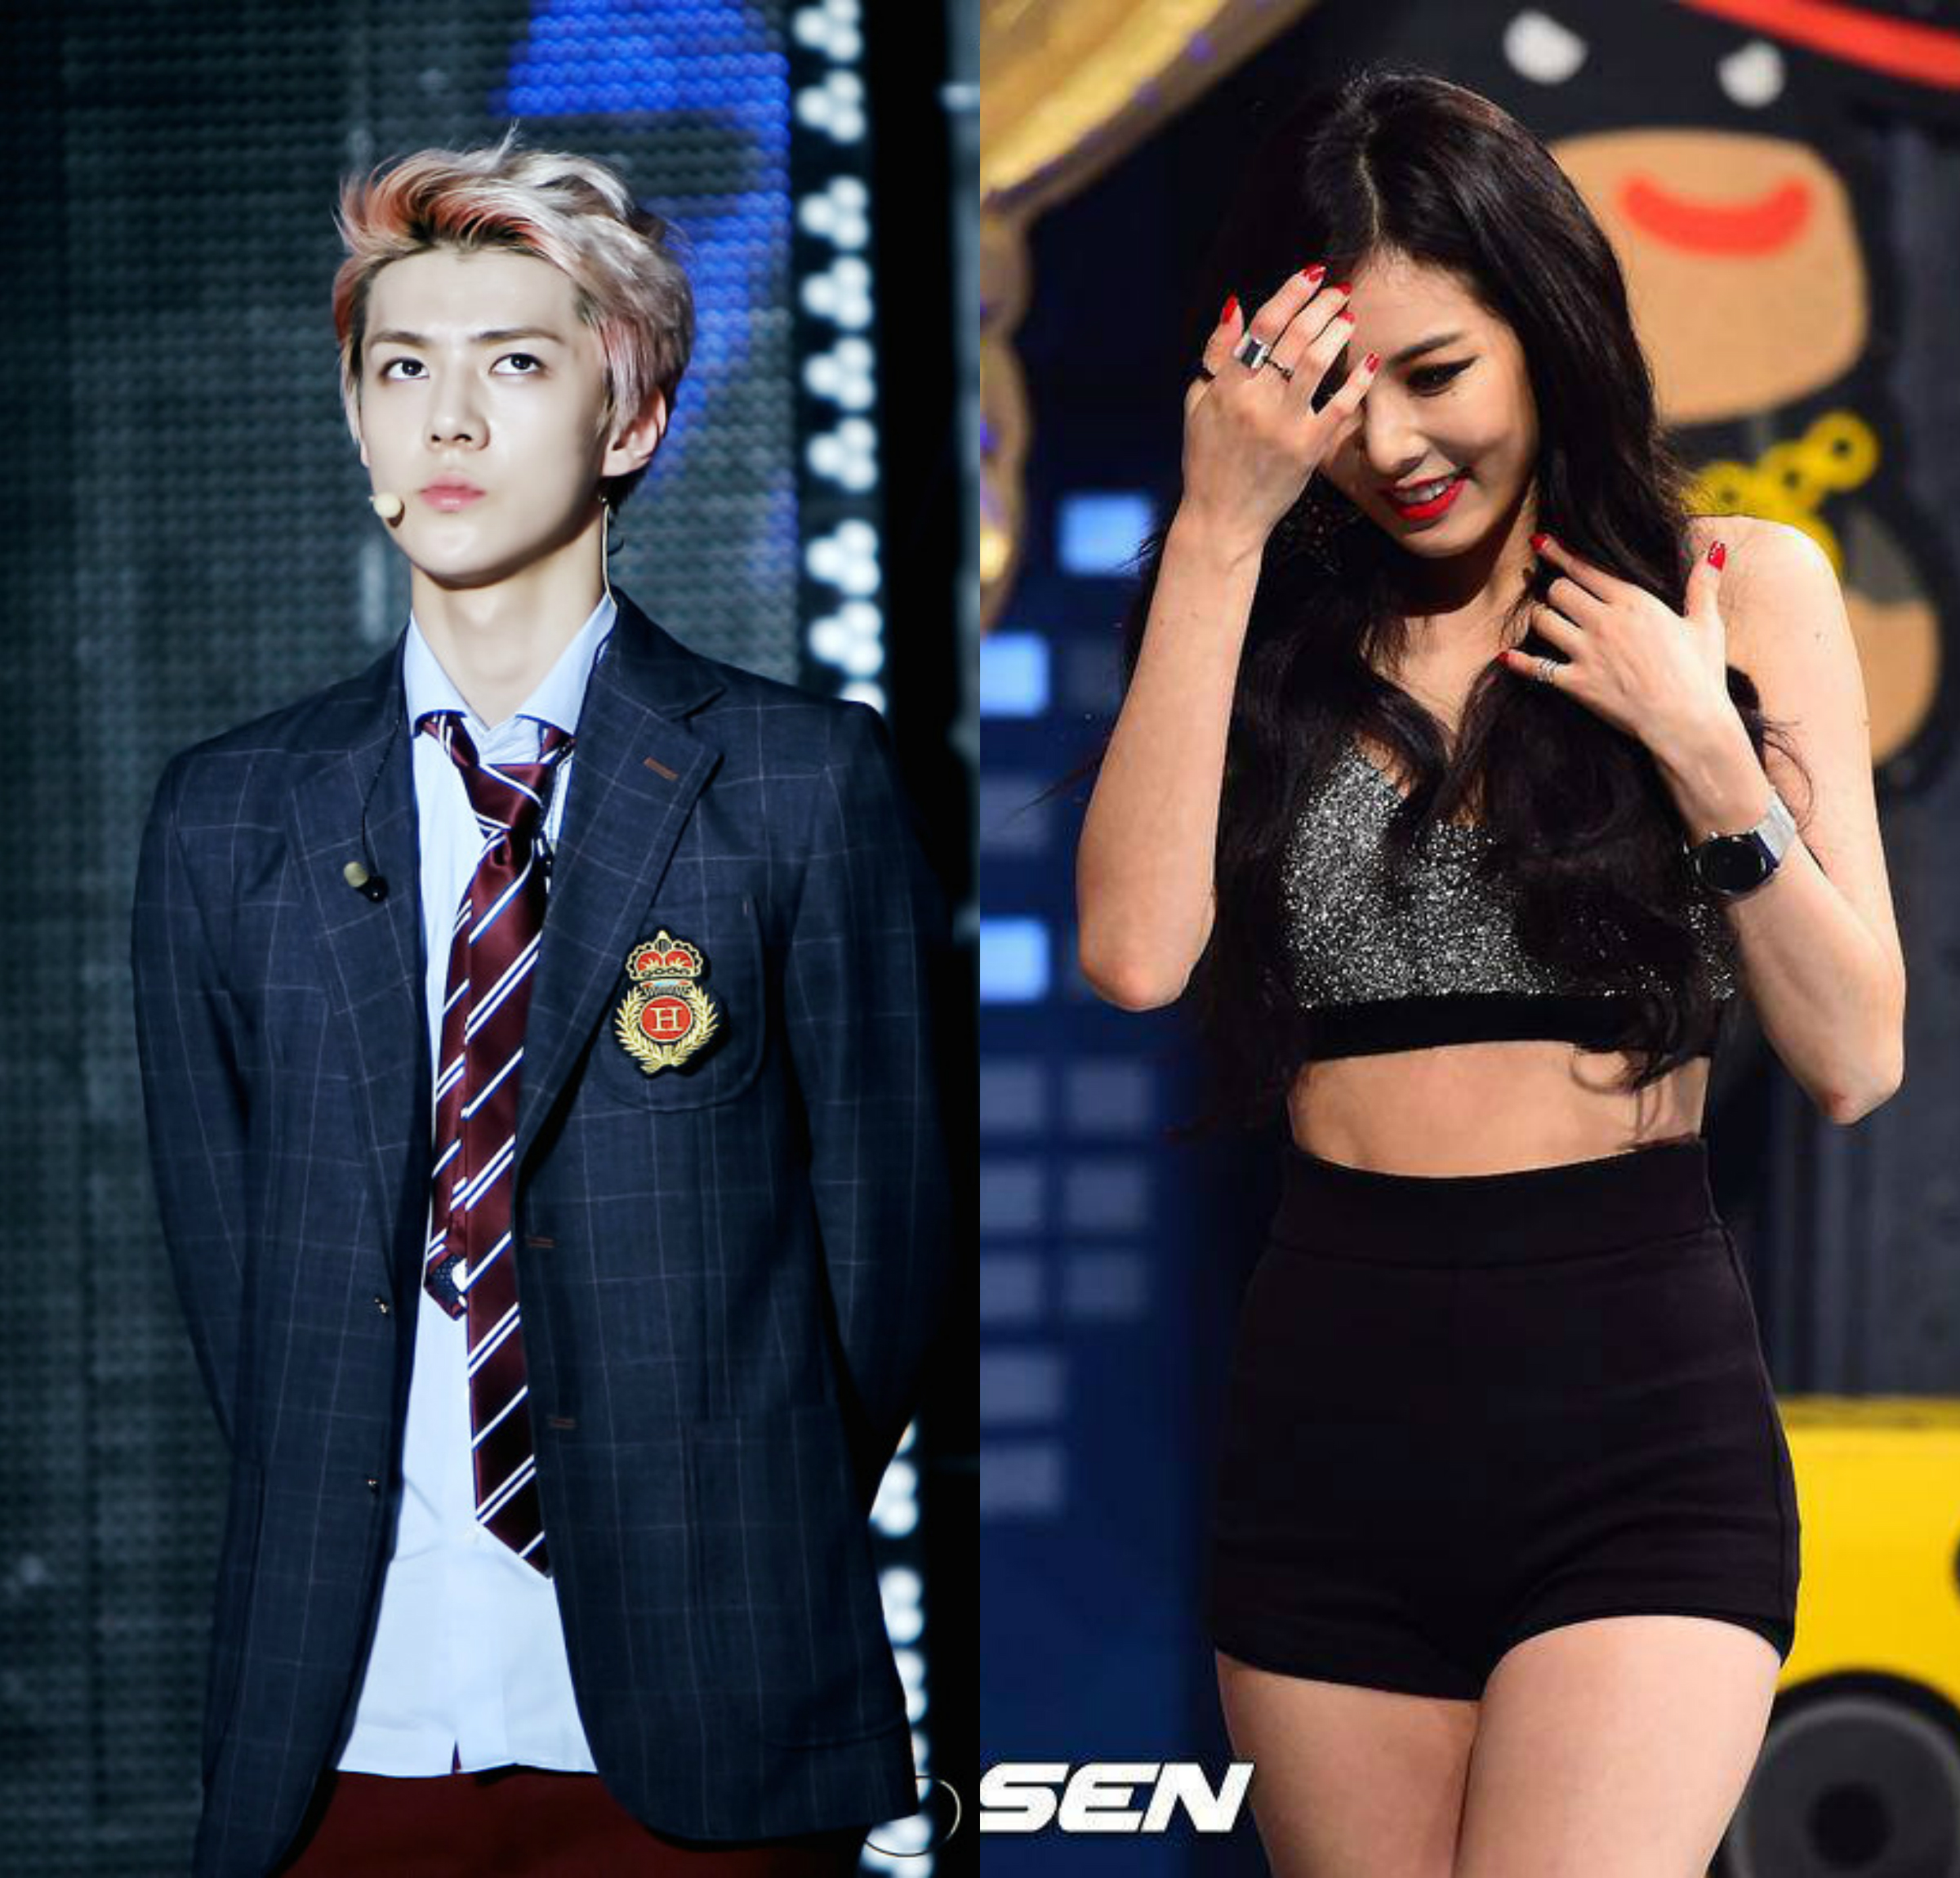 daeun and sehun dating